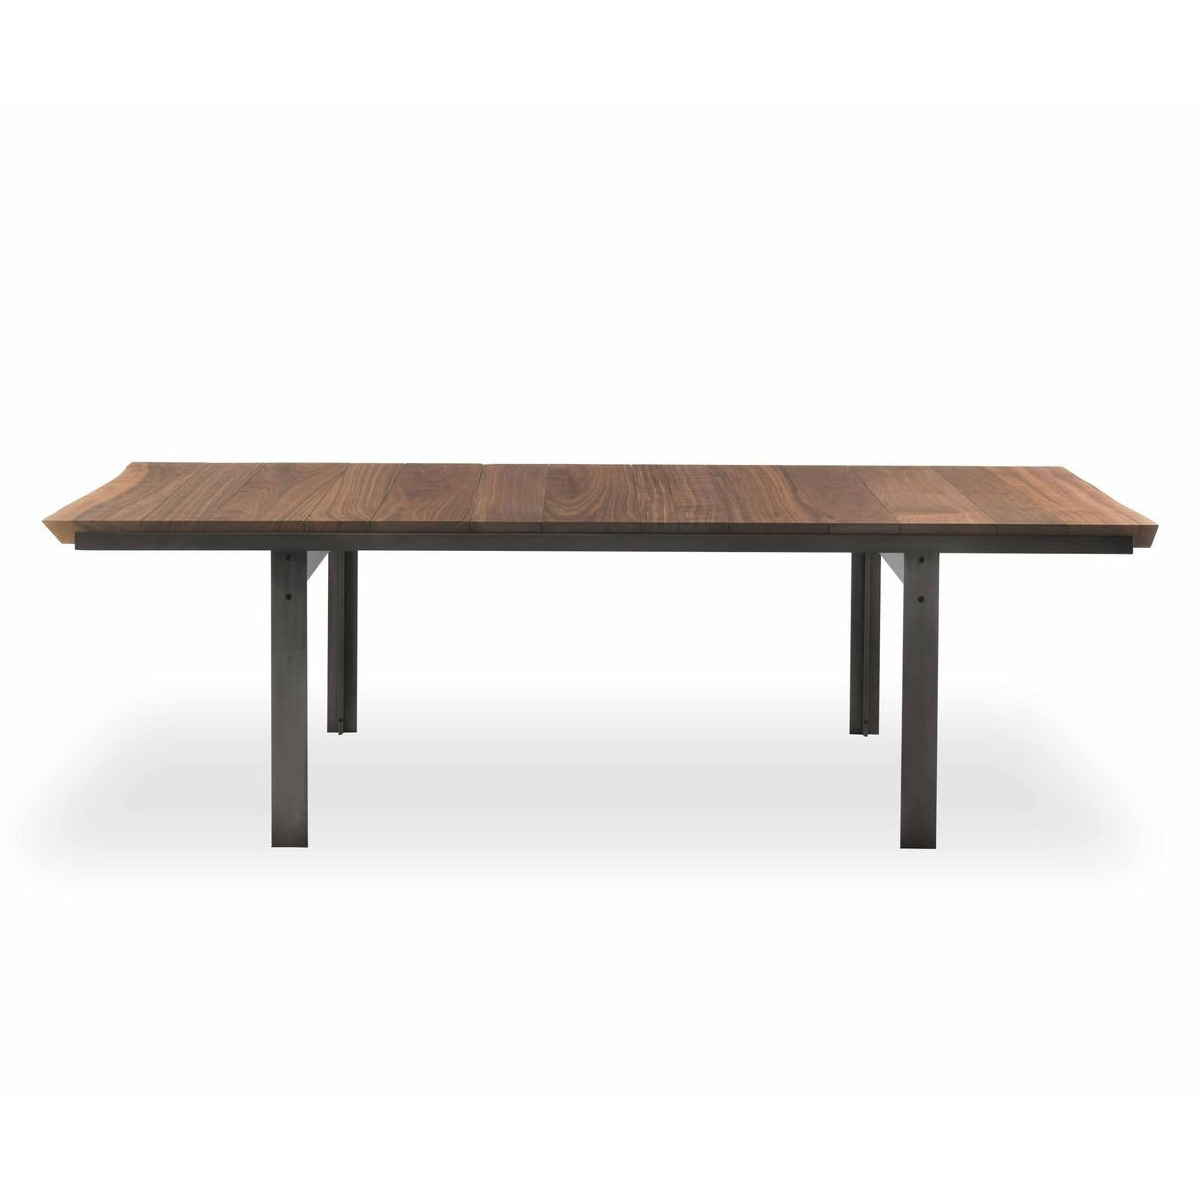 Touch dining table from Riva 1920